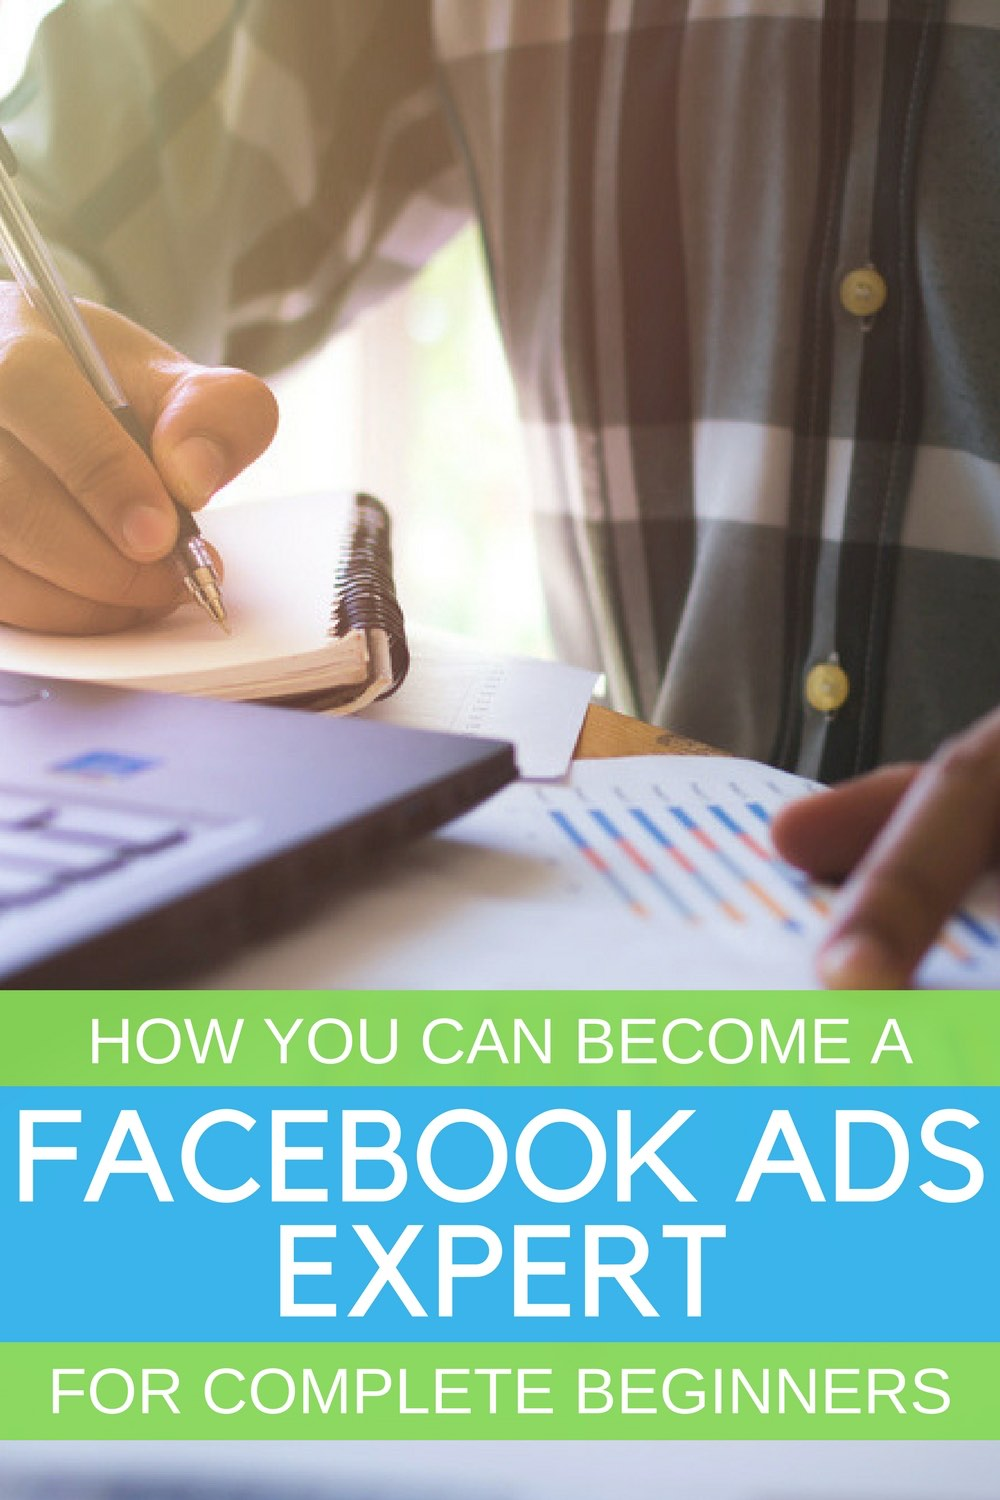 Setup Facebook Ads | Facebook Advertising | Marketing Clients #facebookads #sidehustles #sales